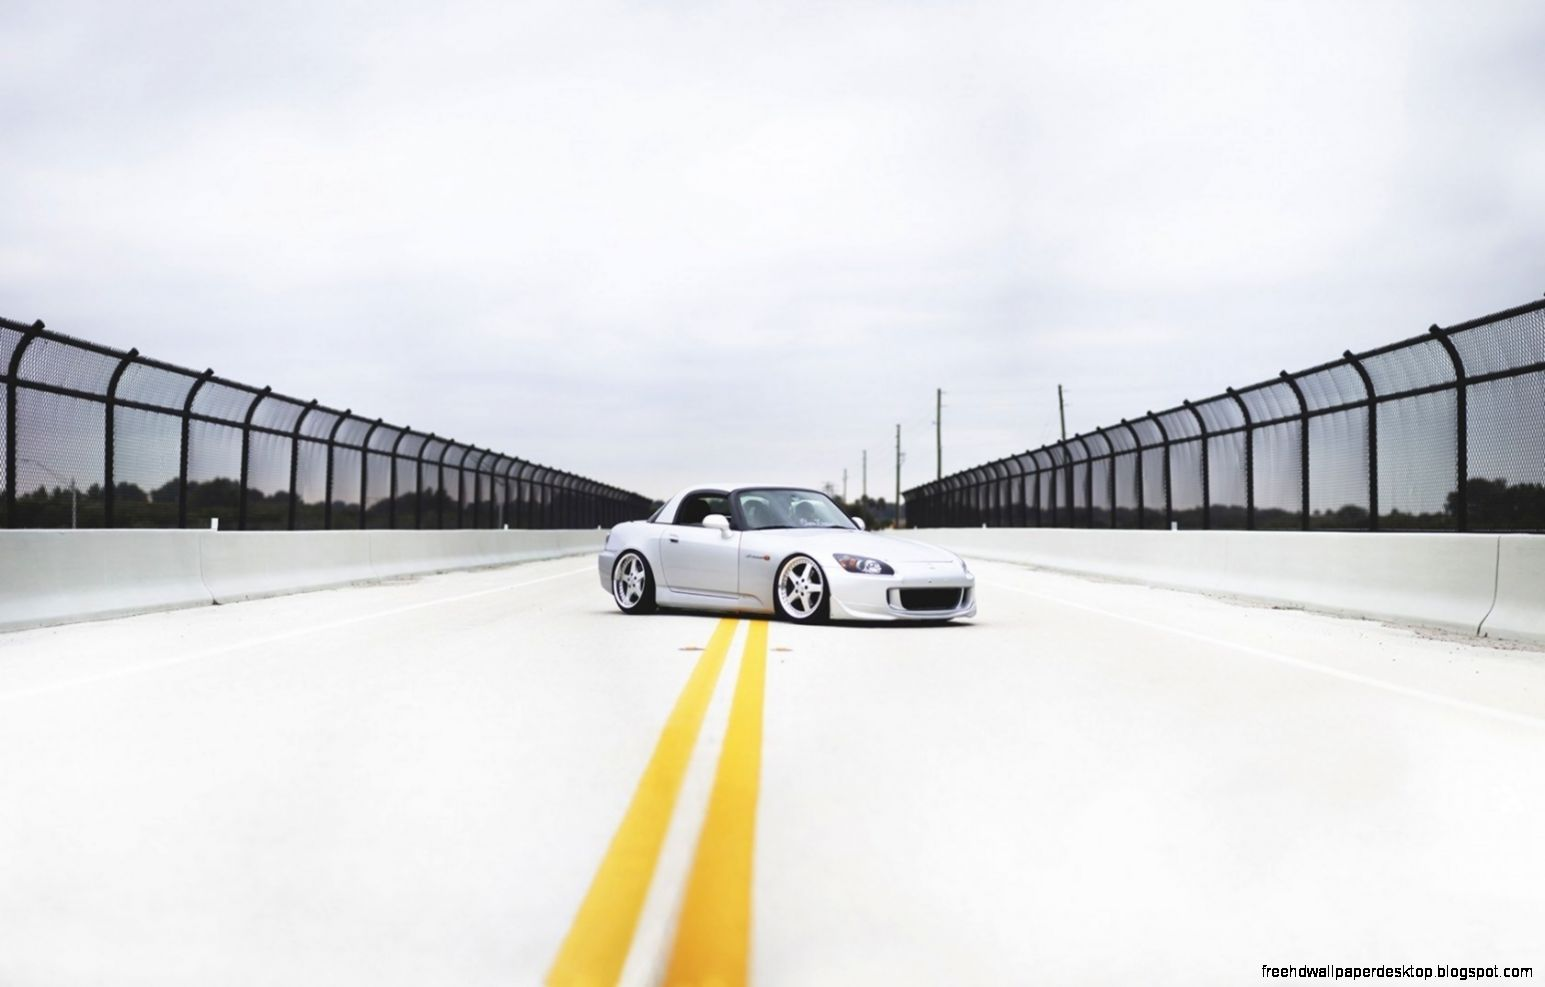 Honda S2000 Bridge HD Wallpaper   FreeWallsUp